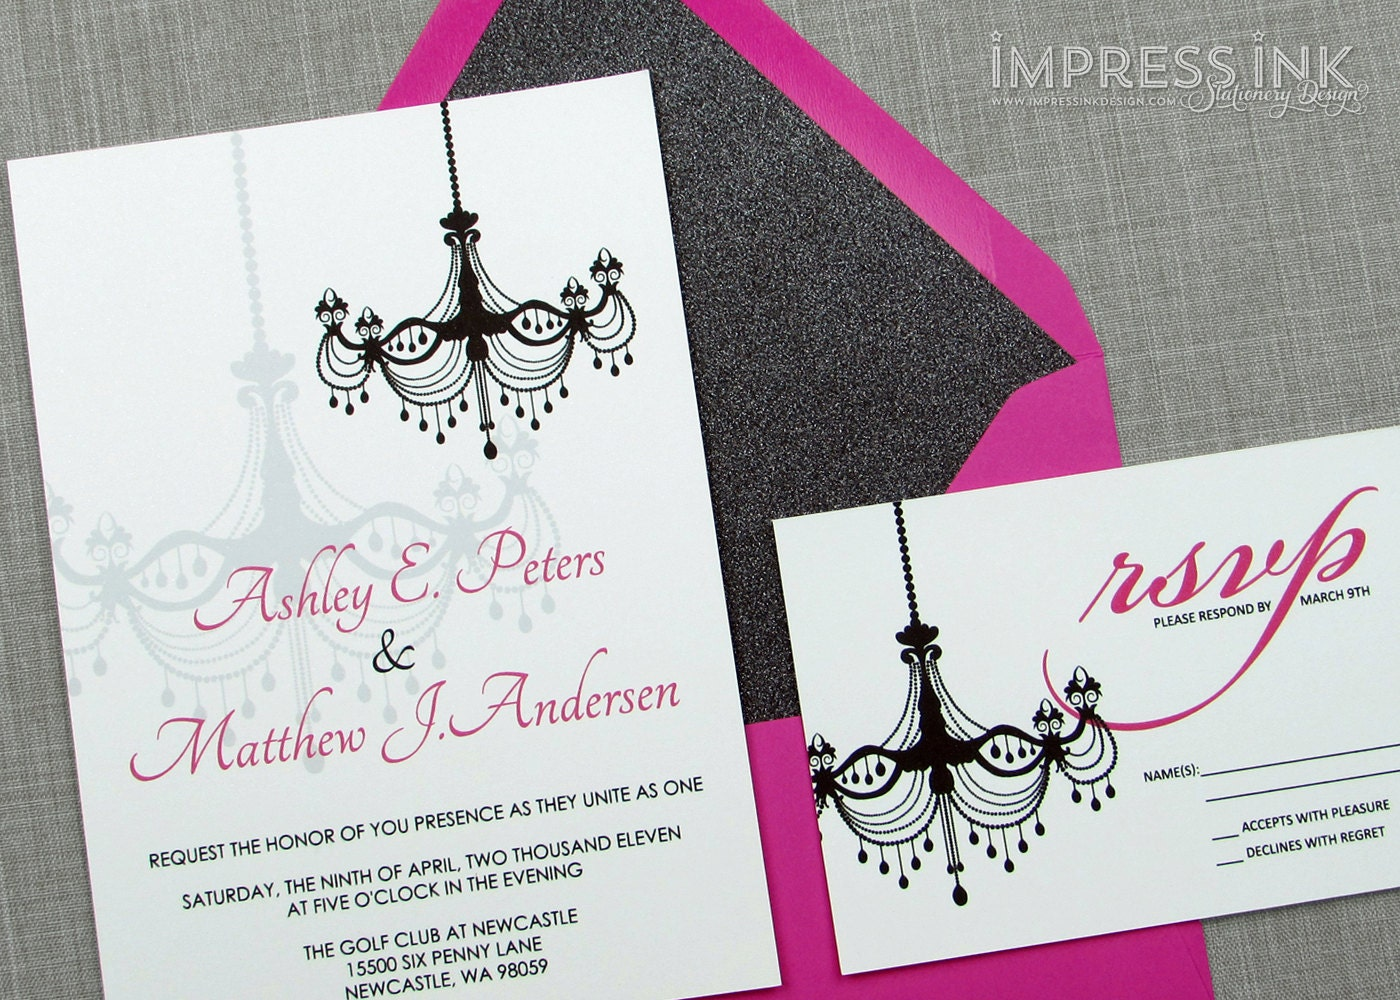 Chandelier Wedding Invitations: Modern Victorian Chandelier Wedding Invitation Sample Flat